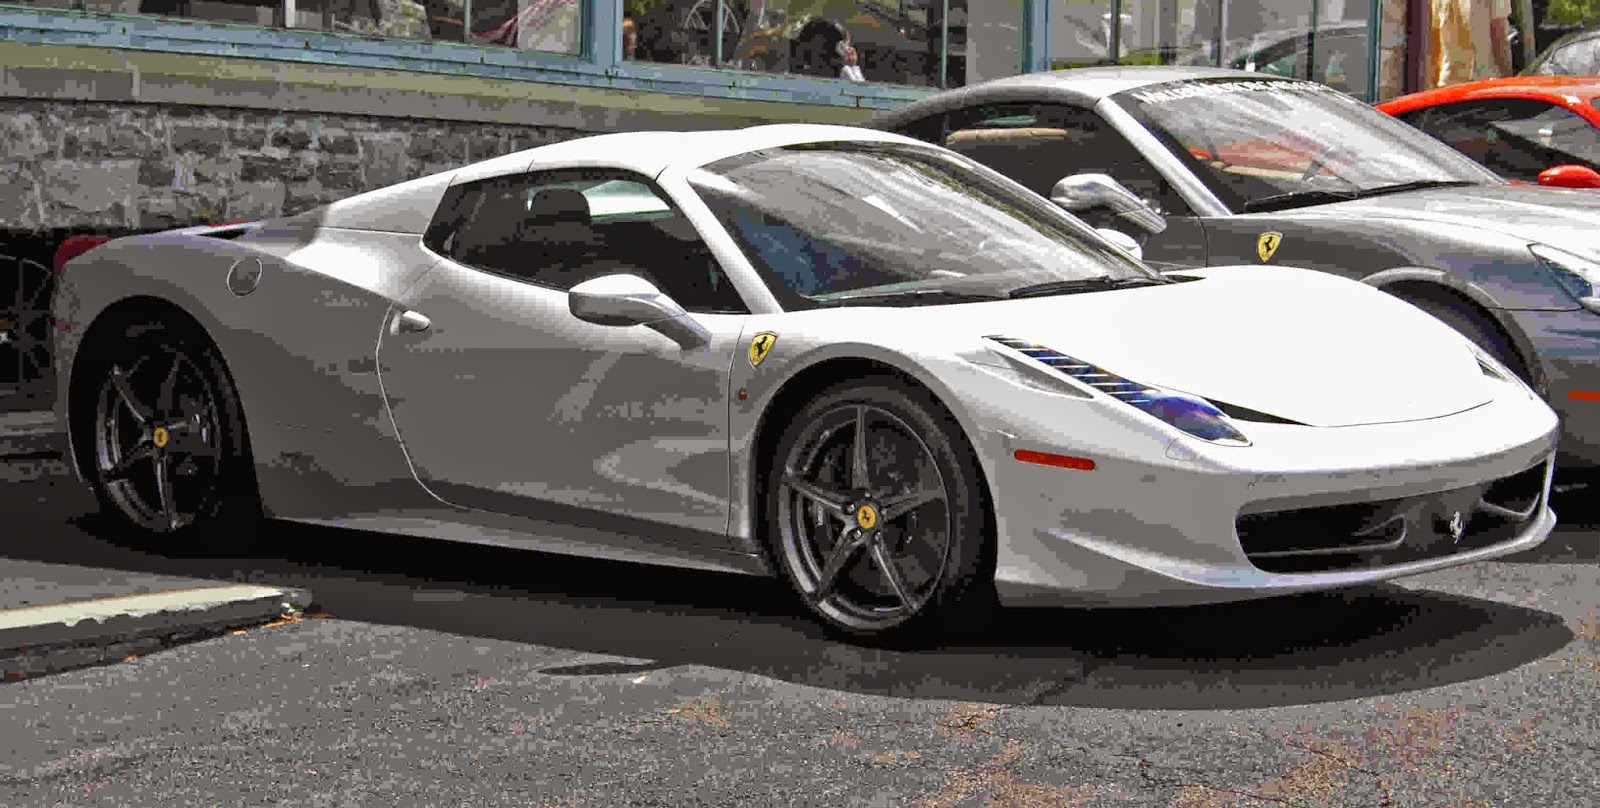 Wallpaper Ferrari 458 White Putih